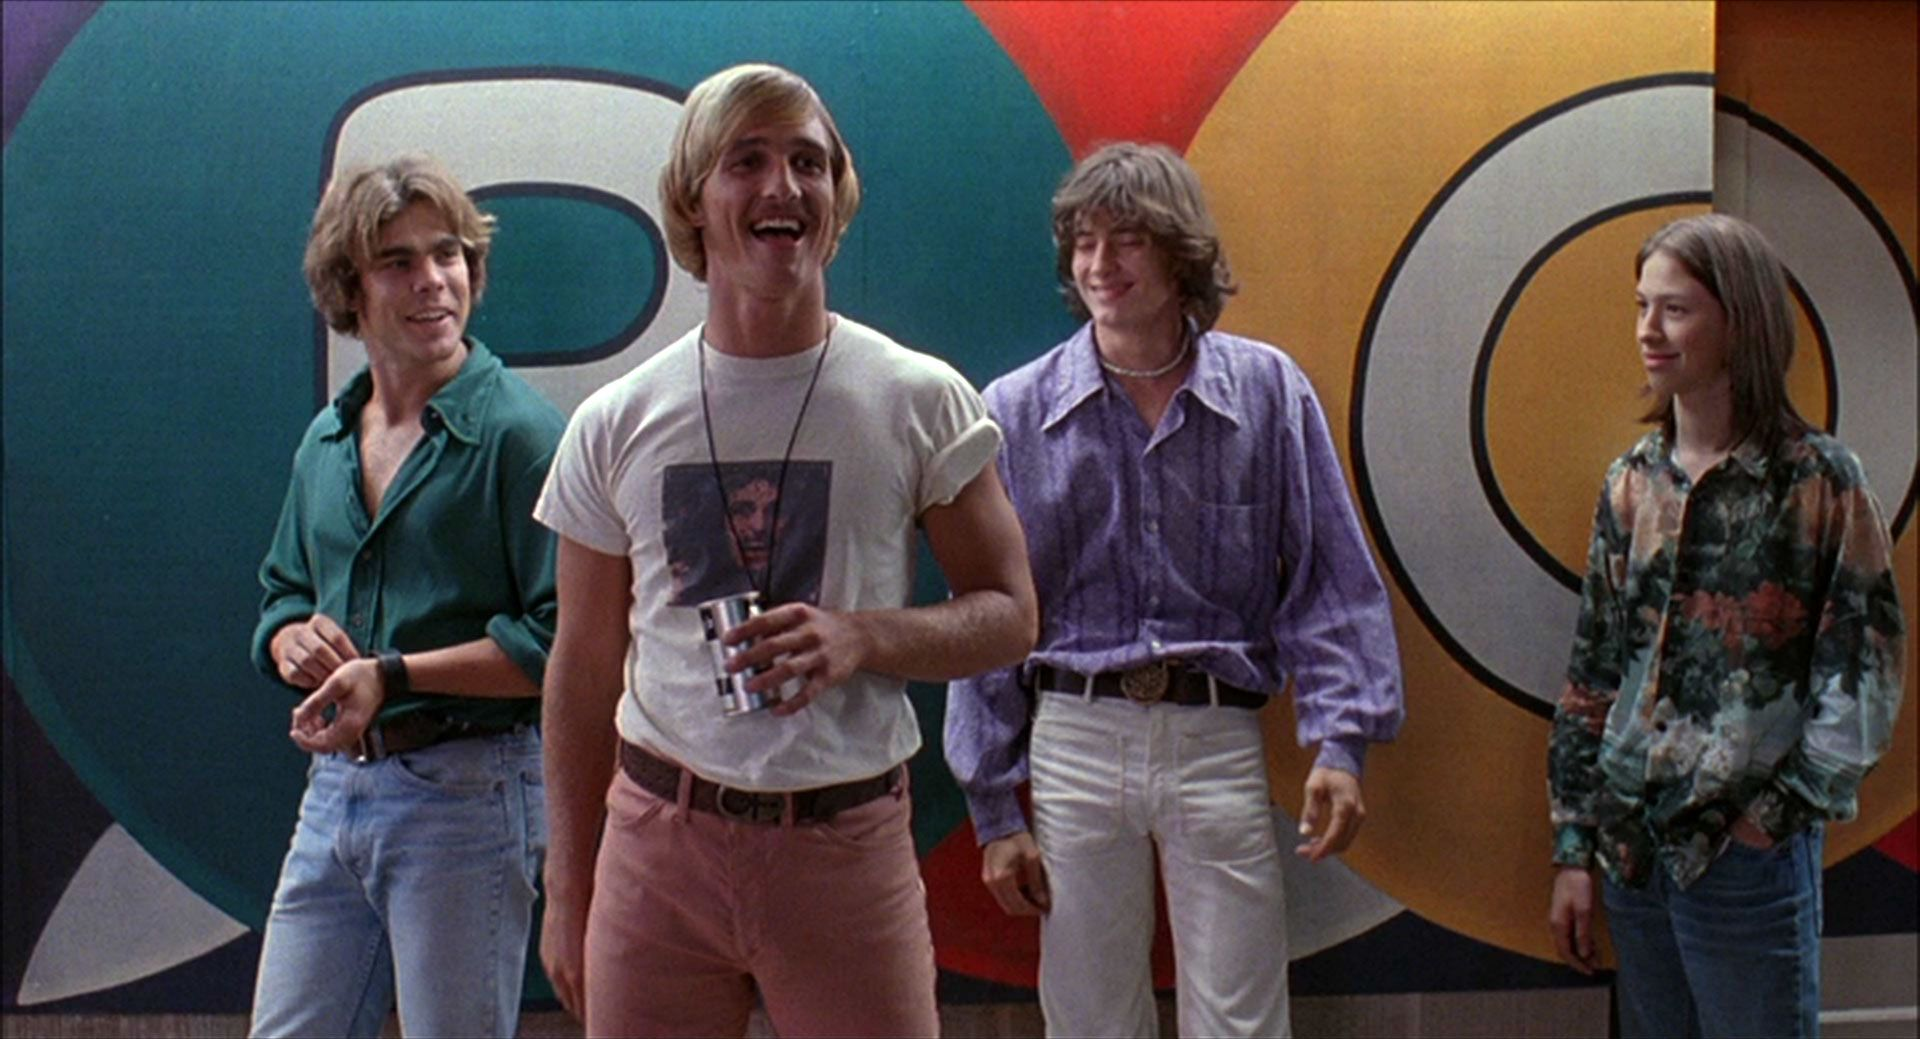 A young Matthew McConaughey sleazes among high school girls in  Dazed and Confused .